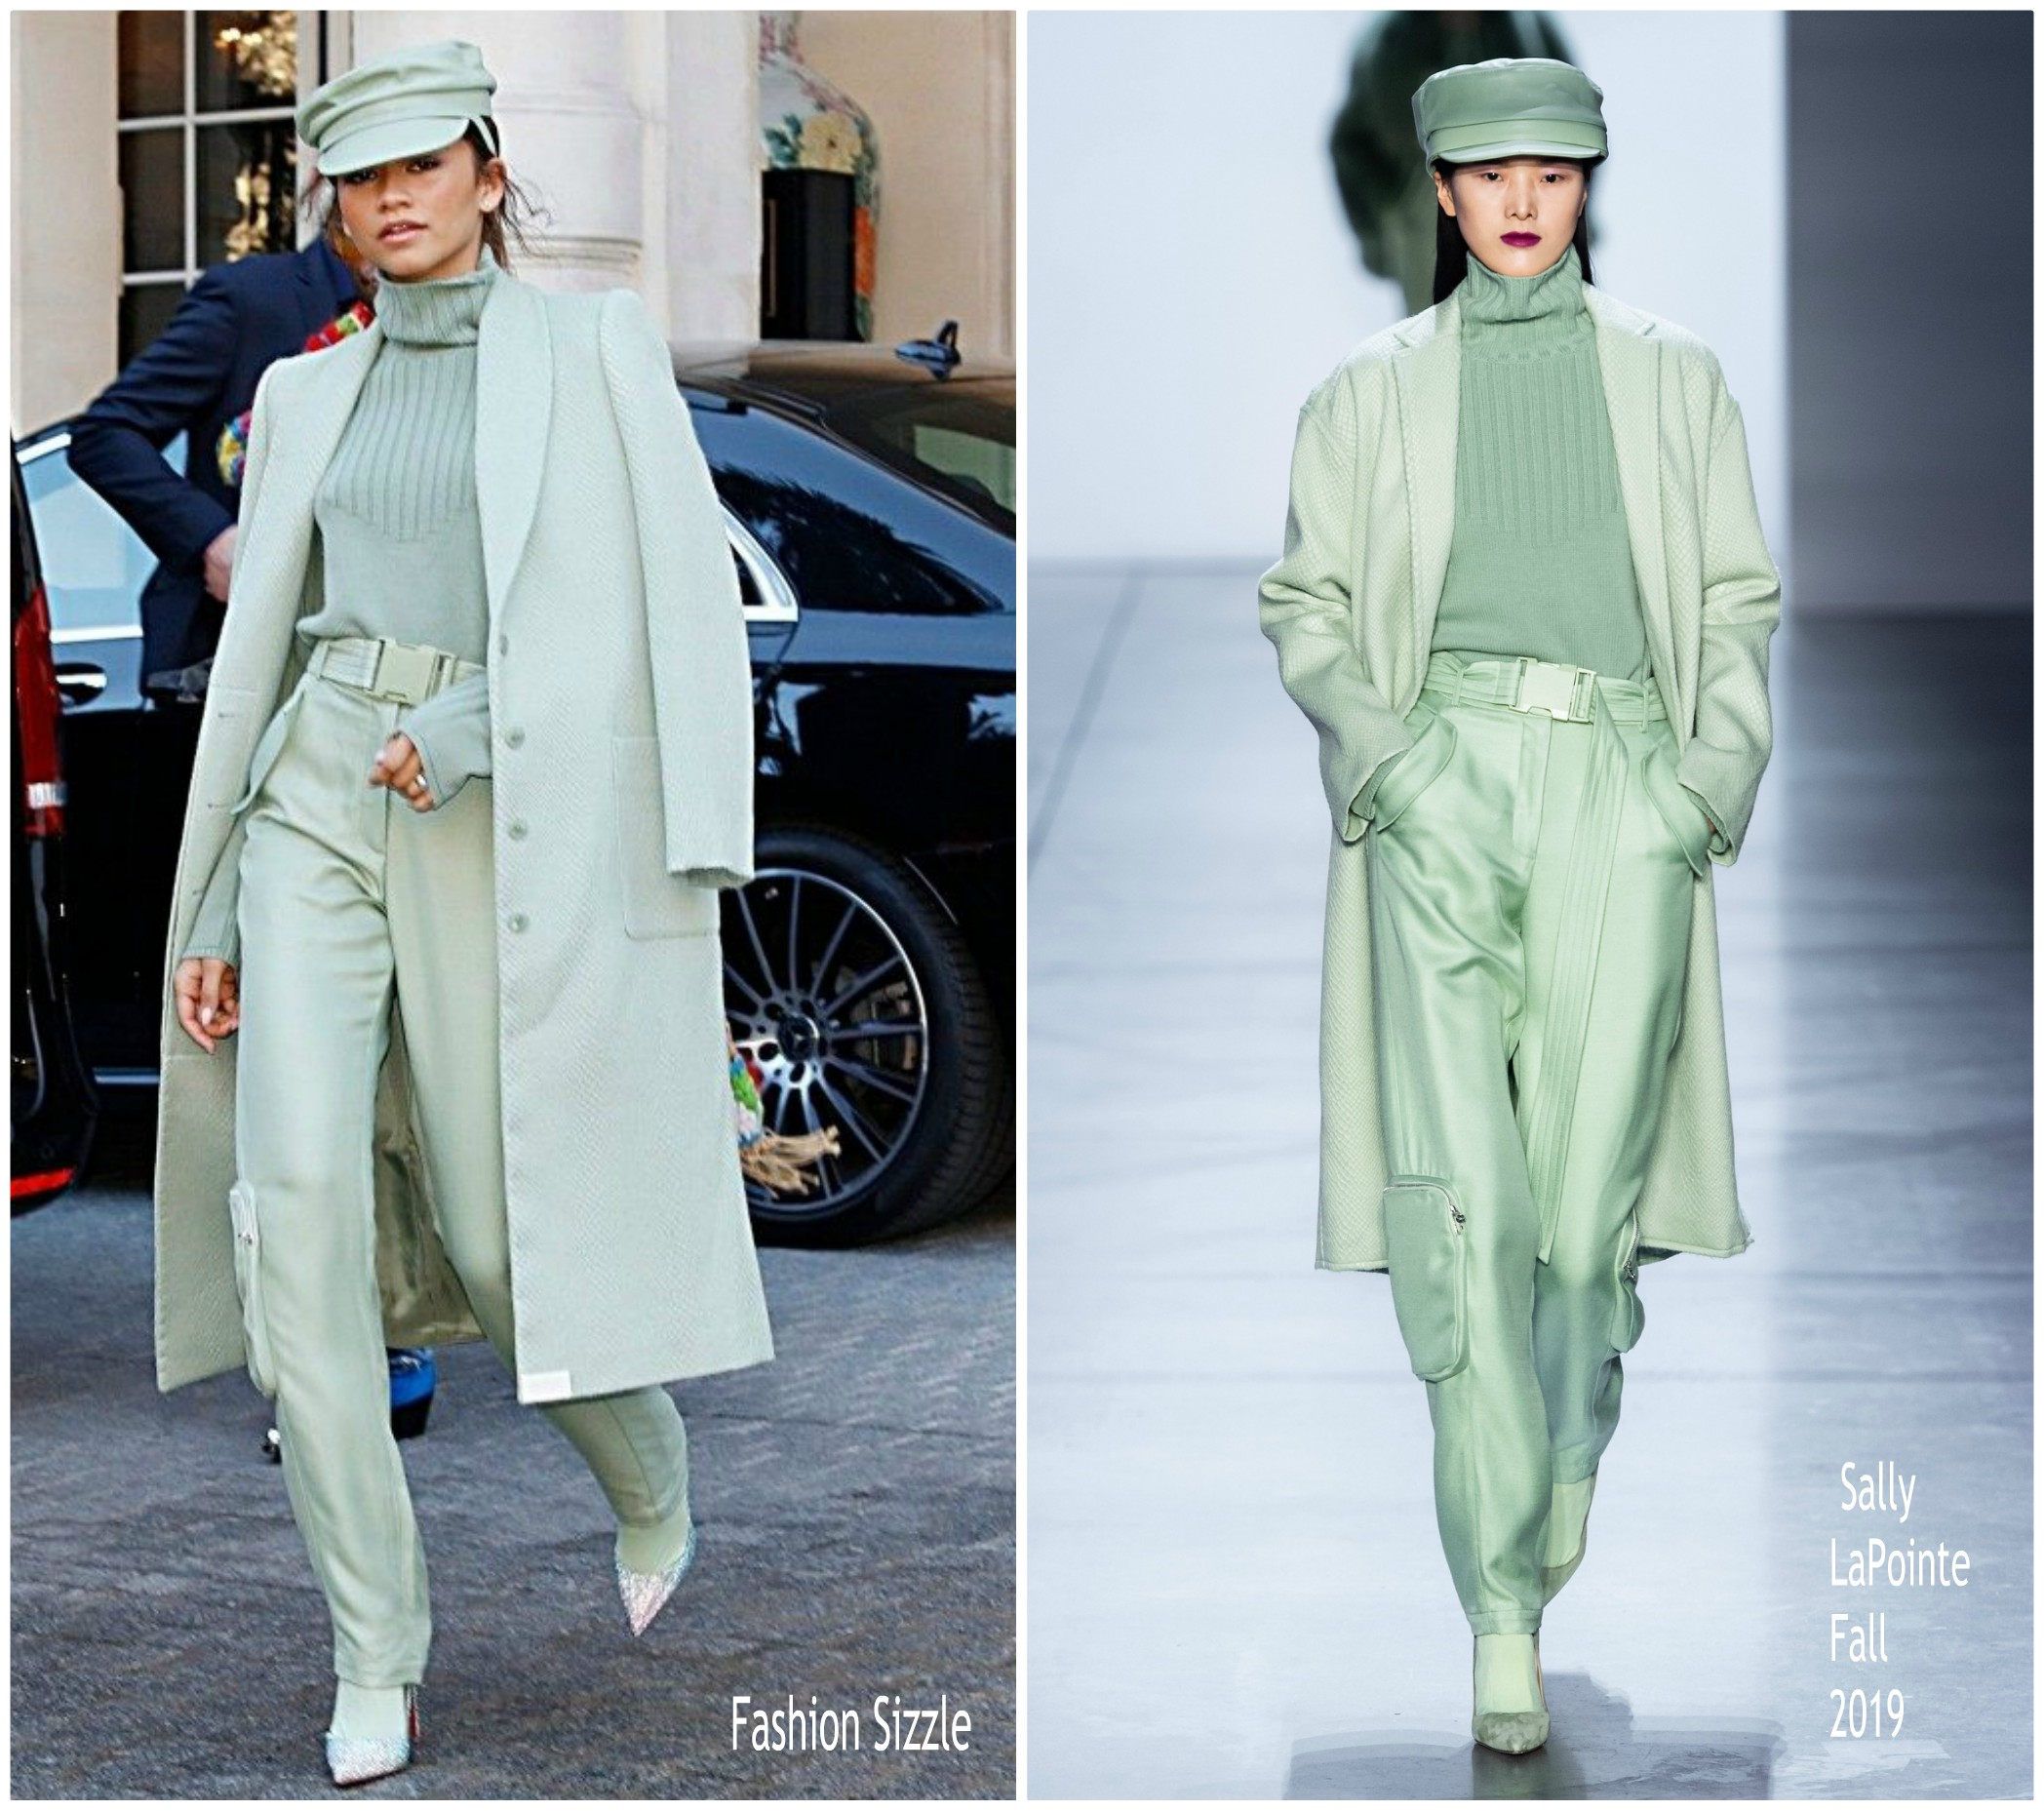 zendaya-coleman-in-sally-lapointe-out-in-paris